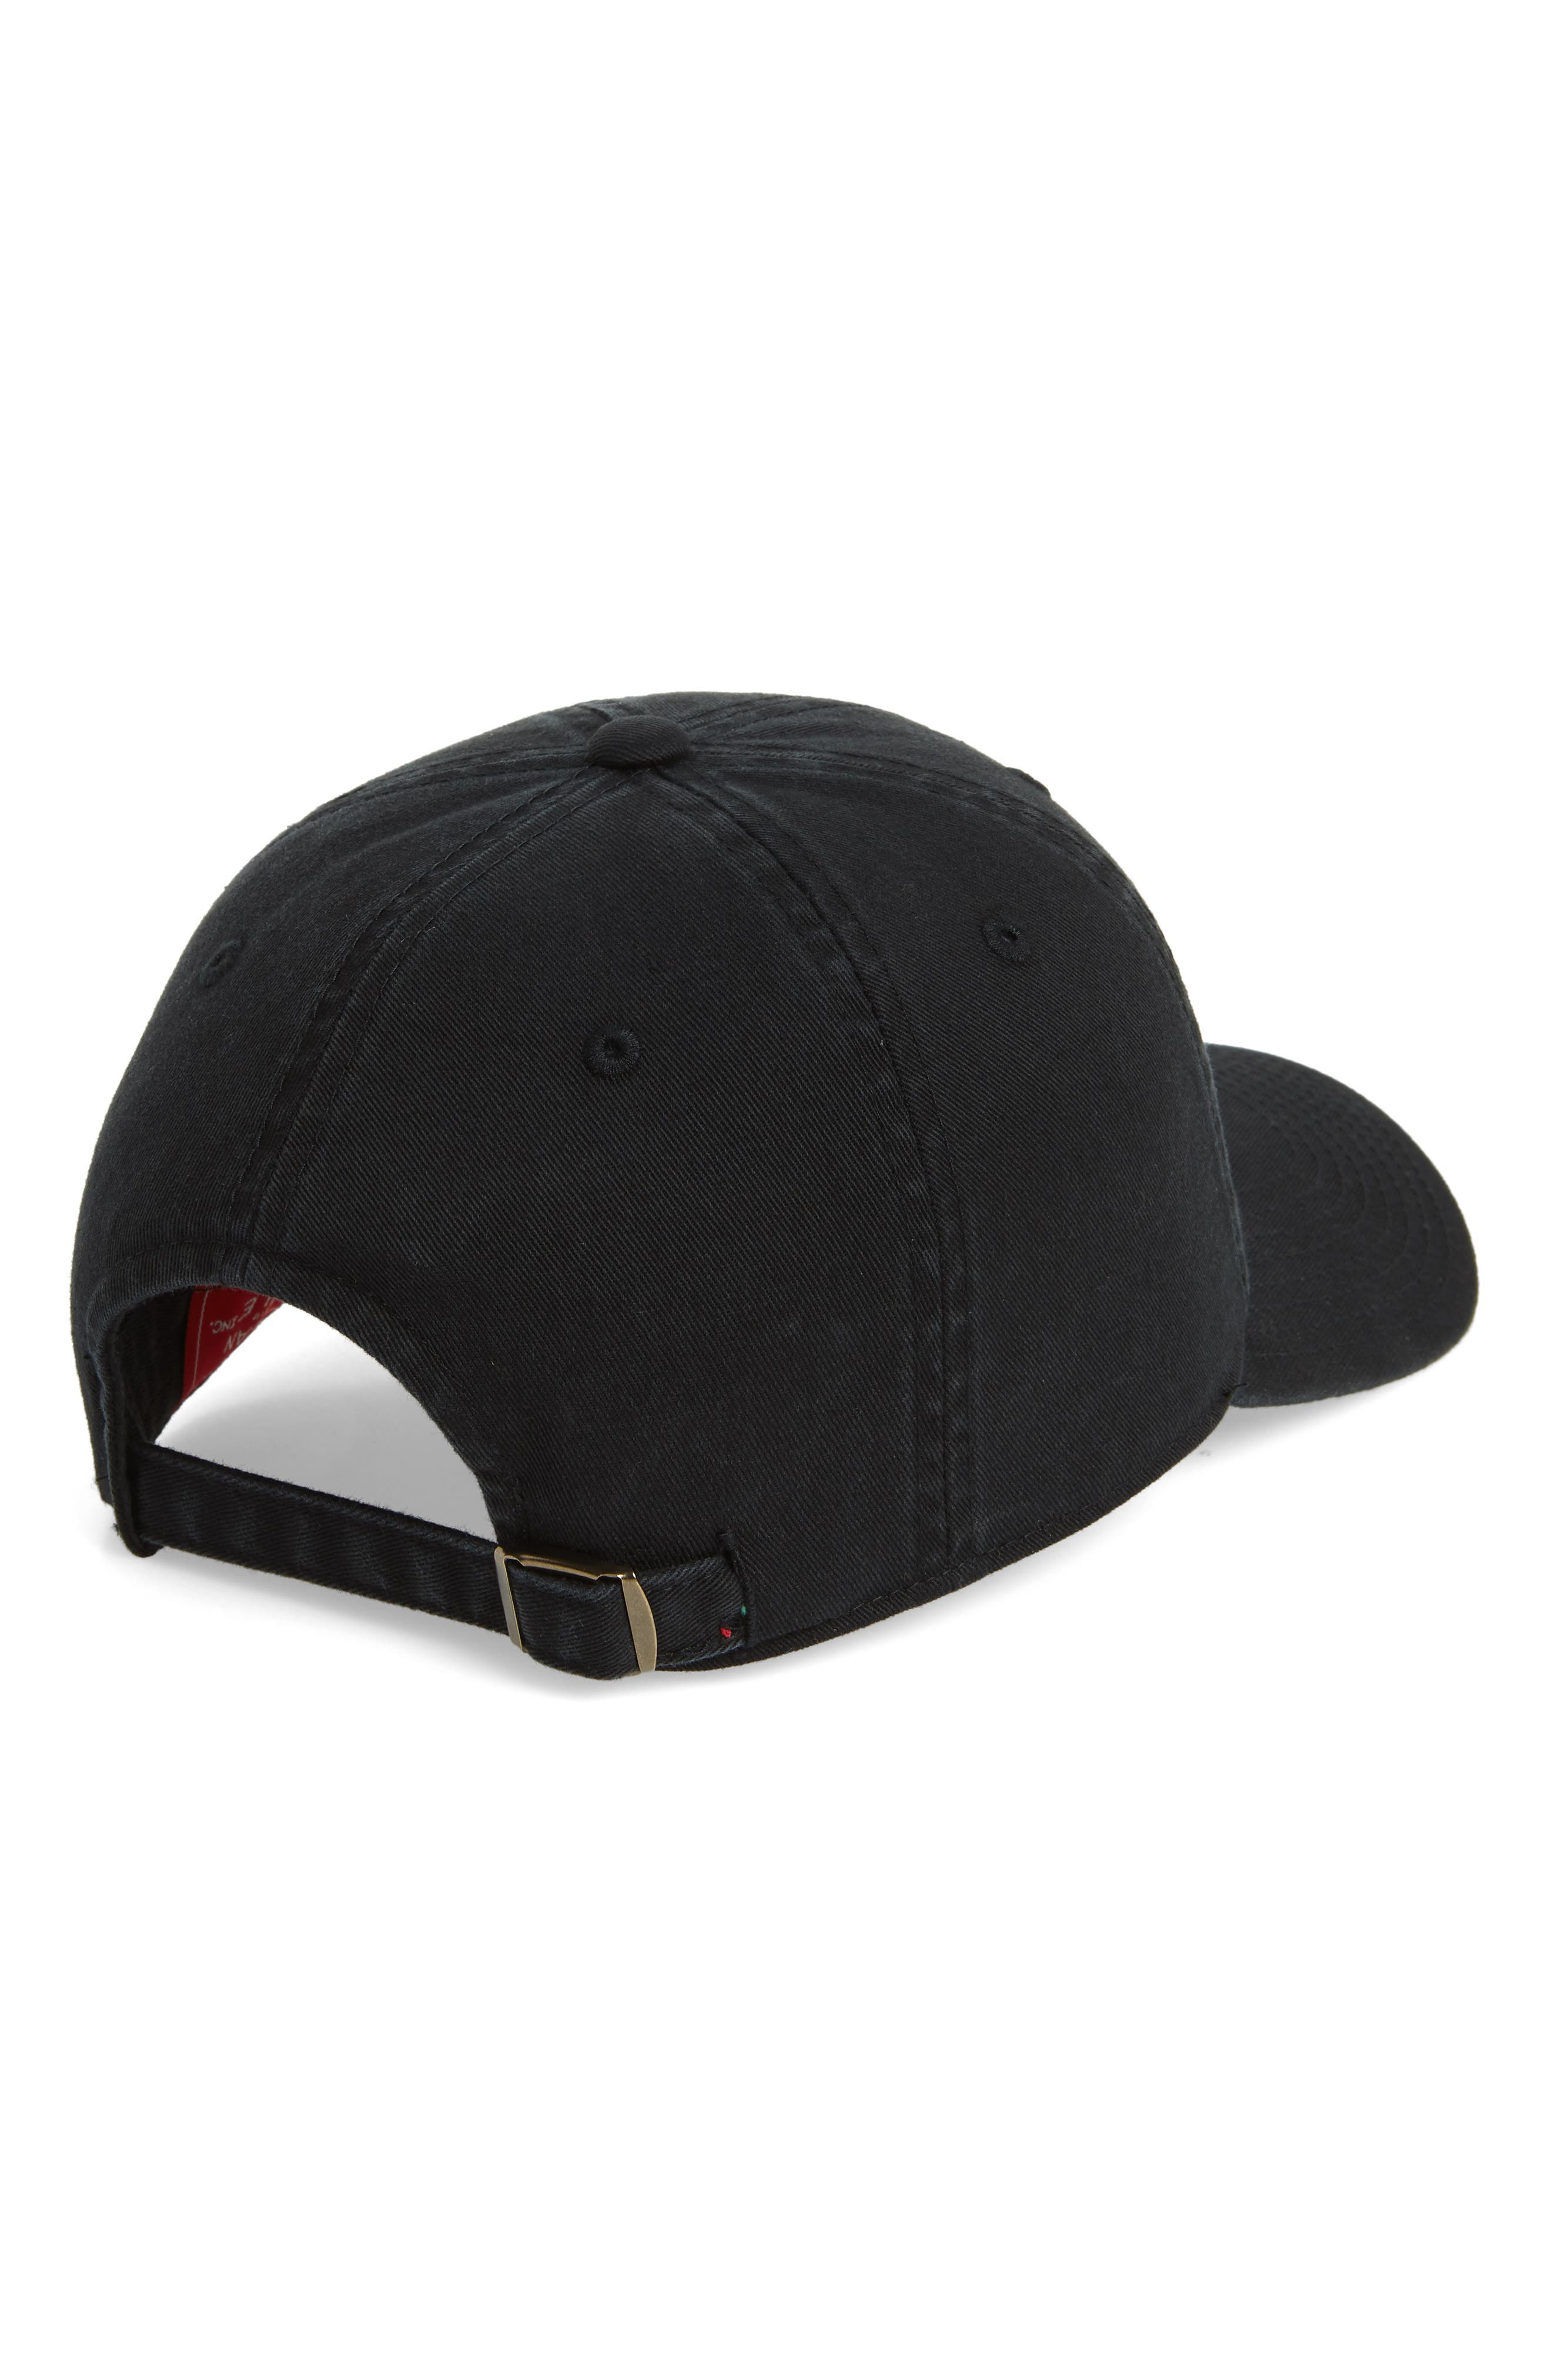 United Slouch Los Angeles Ball Cap,                             Alternate thumbnail 2, color,